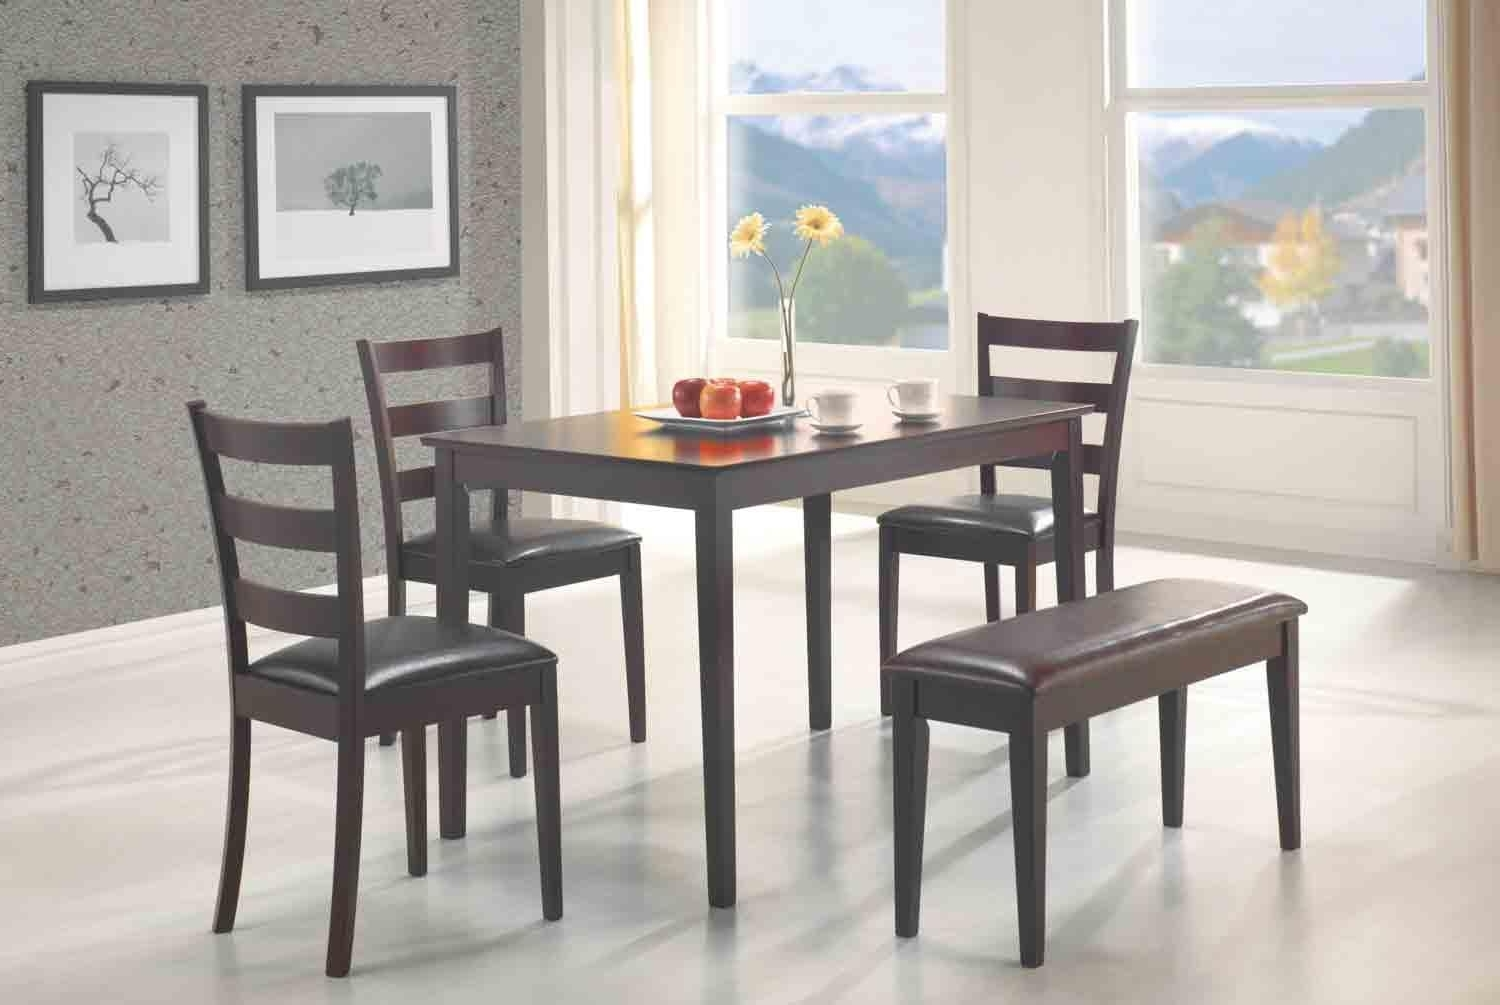 5 Pcs Dining Set Table, 3 Chairs And Bench Dc Furniture within Favorite Small Dining Tables And Bench Sets